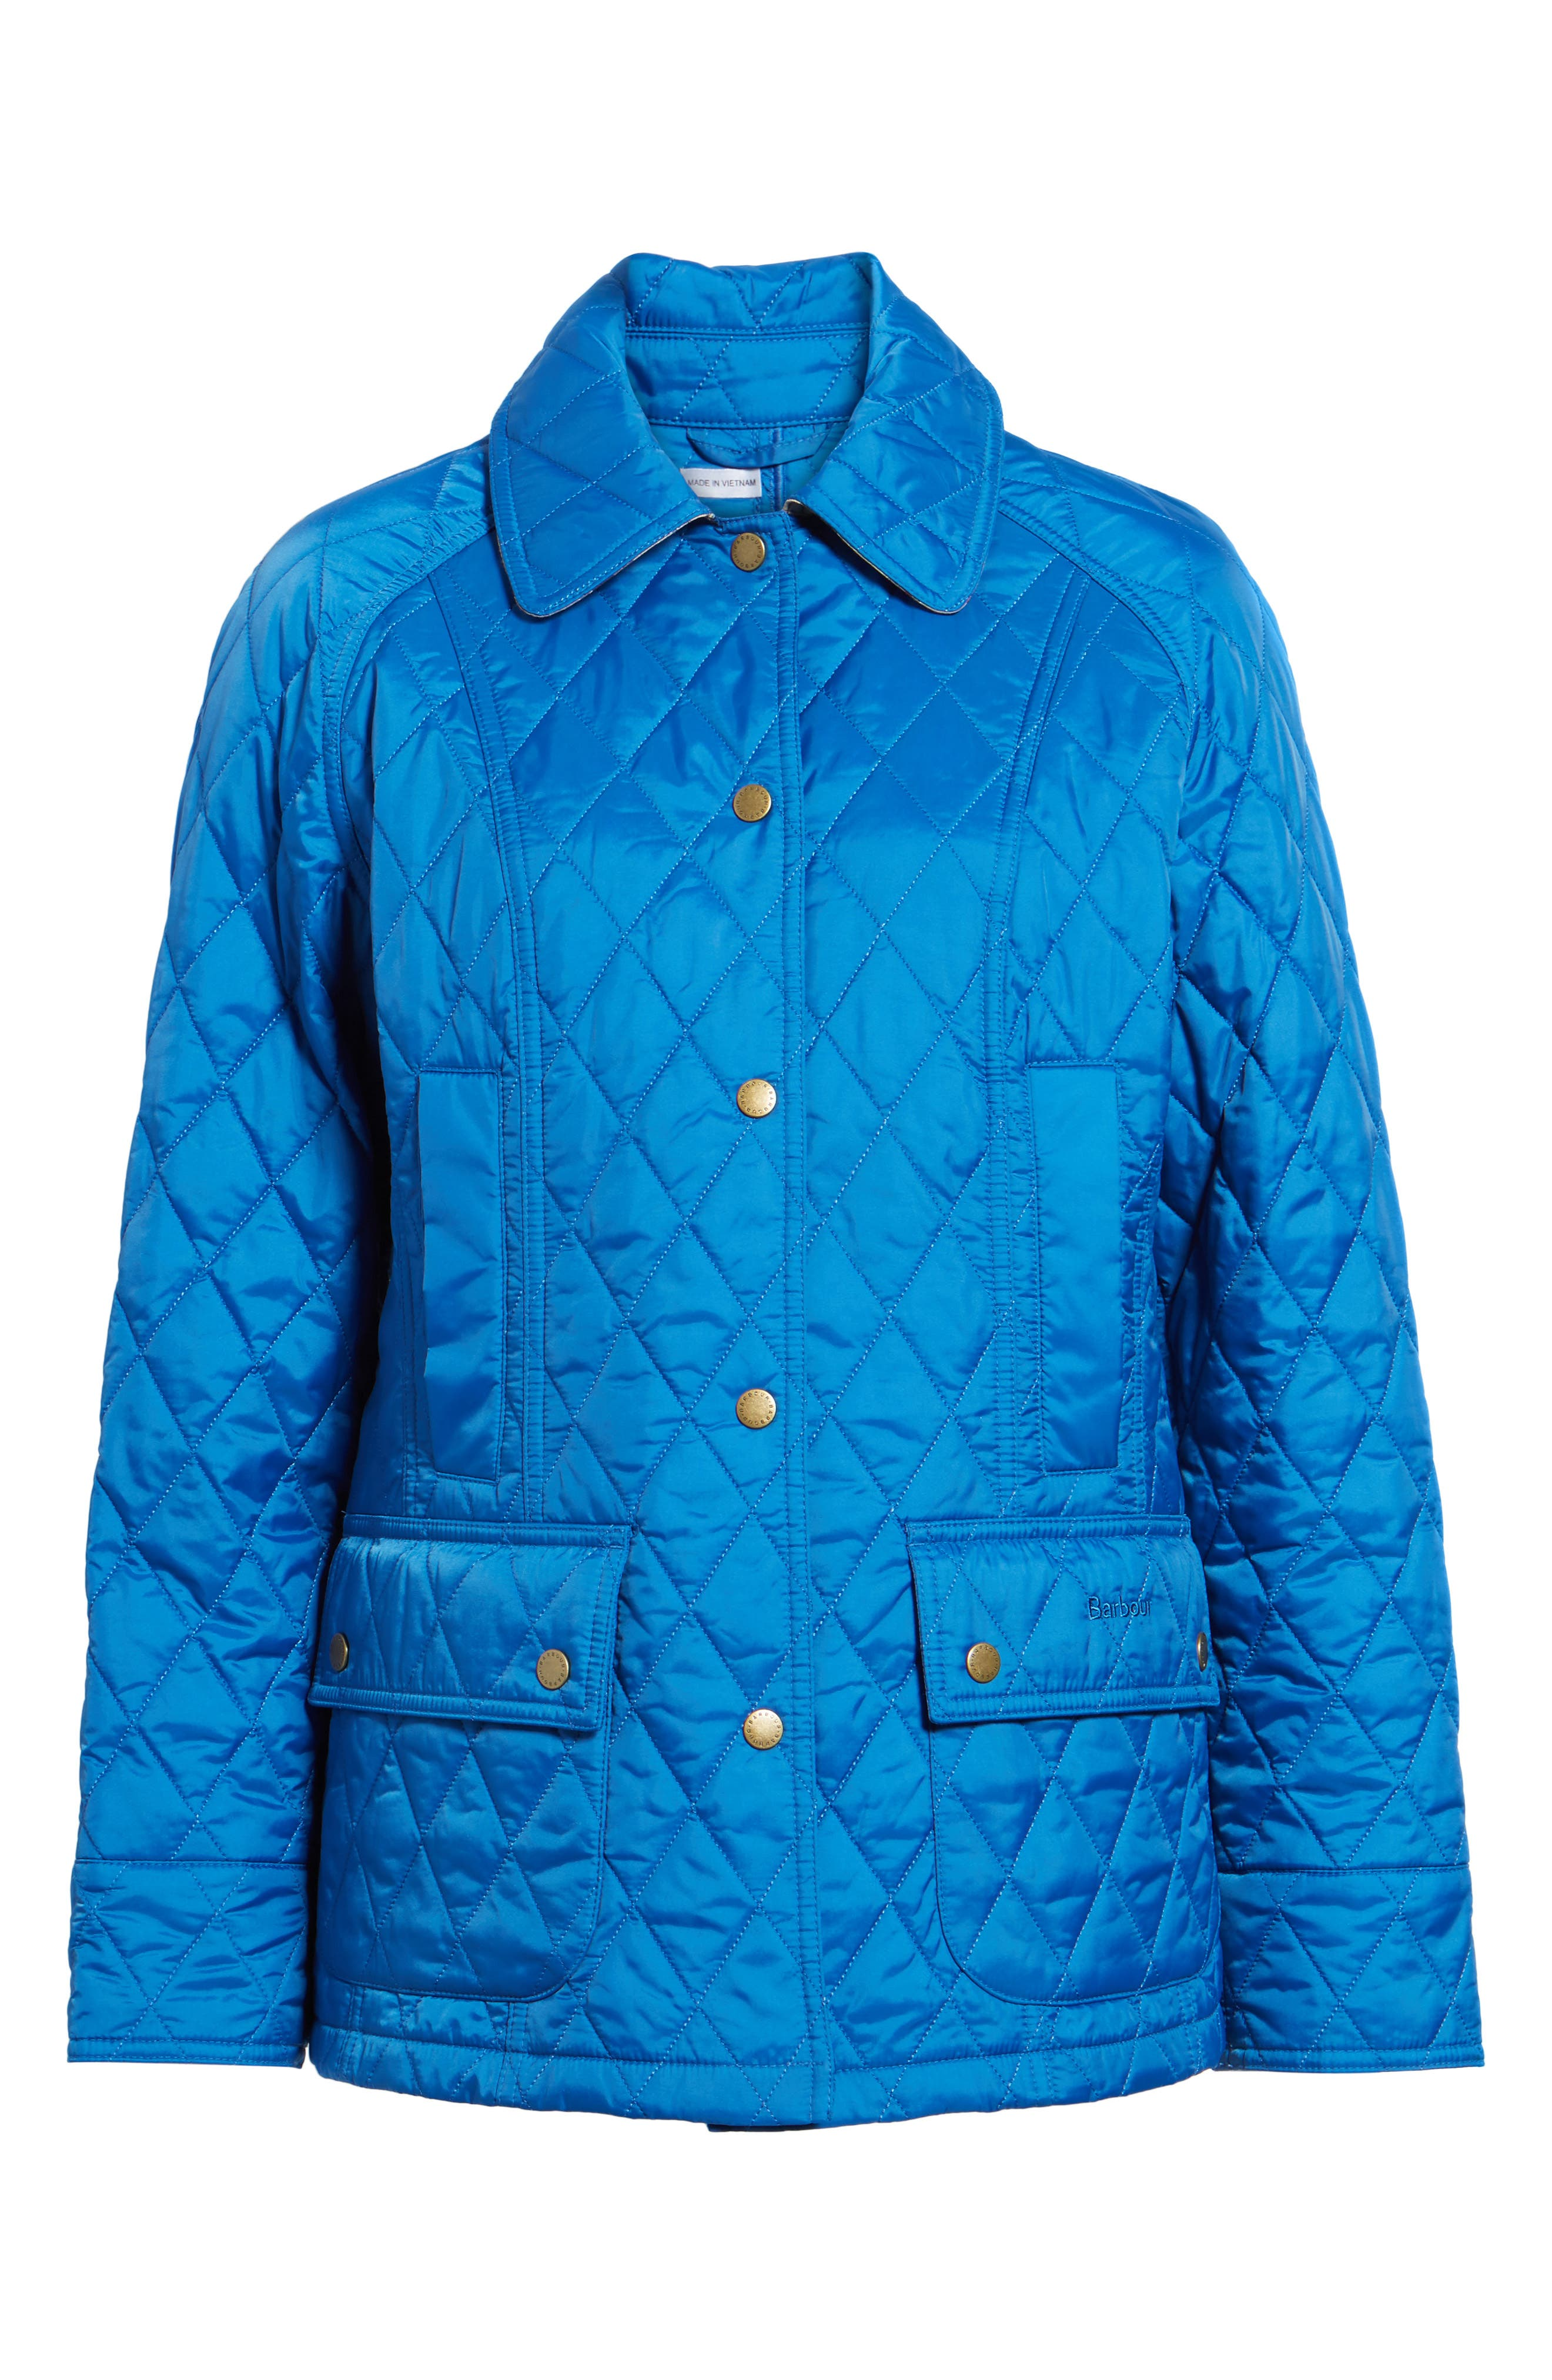 'Beadnell - Summer' Quilted Jacket,                             Alternate thumbnail 6, color,                             Victoria Blue